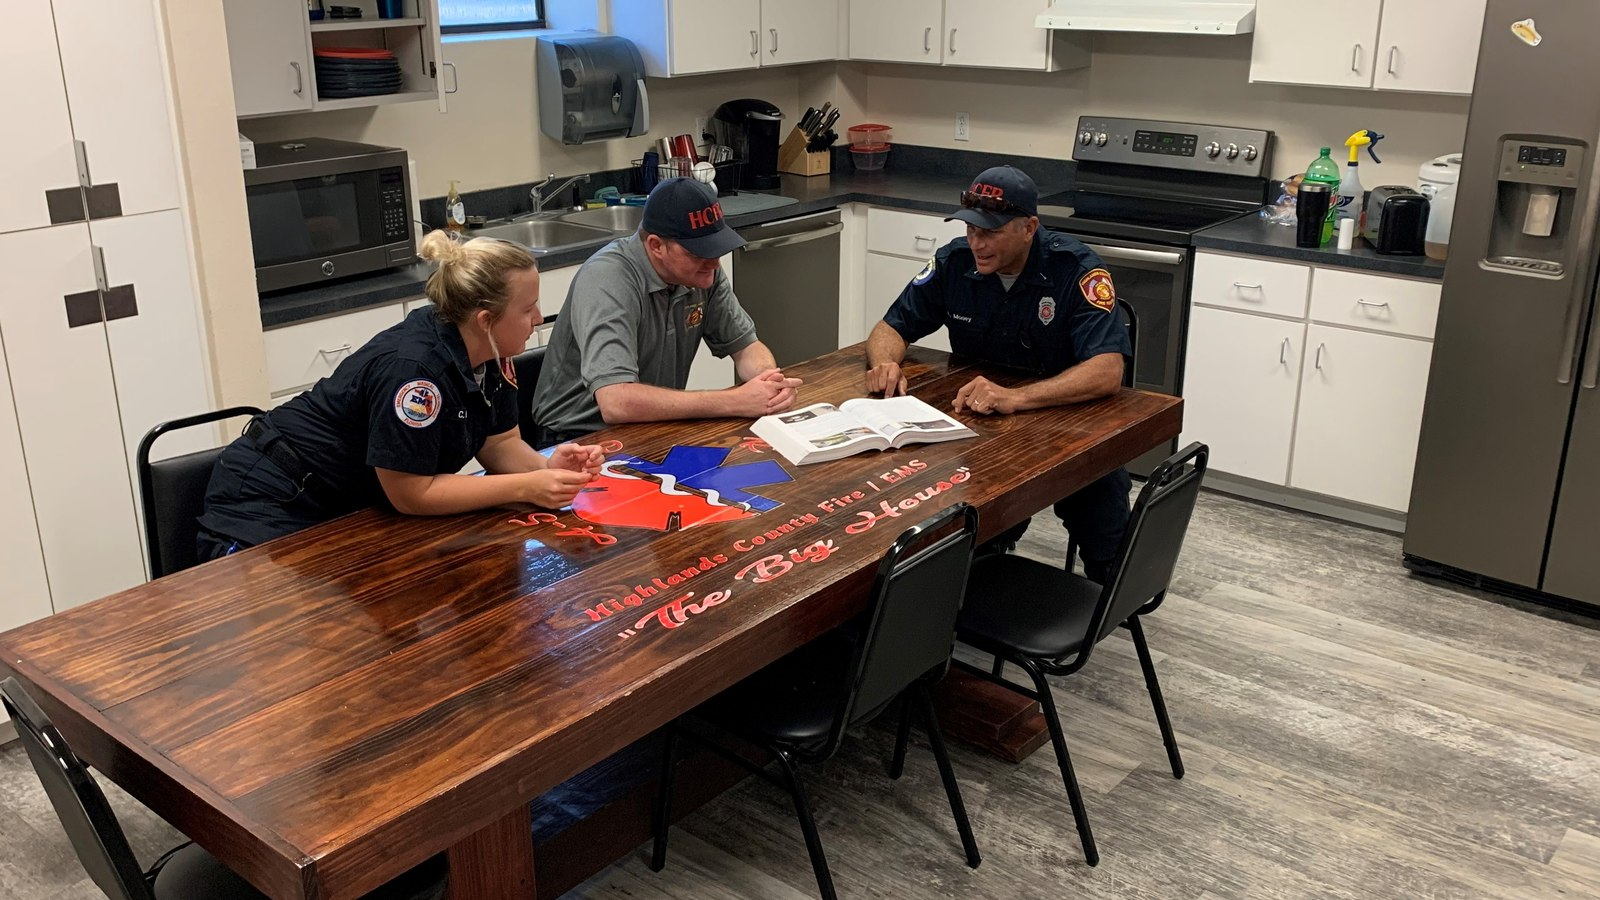 The firehouse kitchen table experience: Building connections